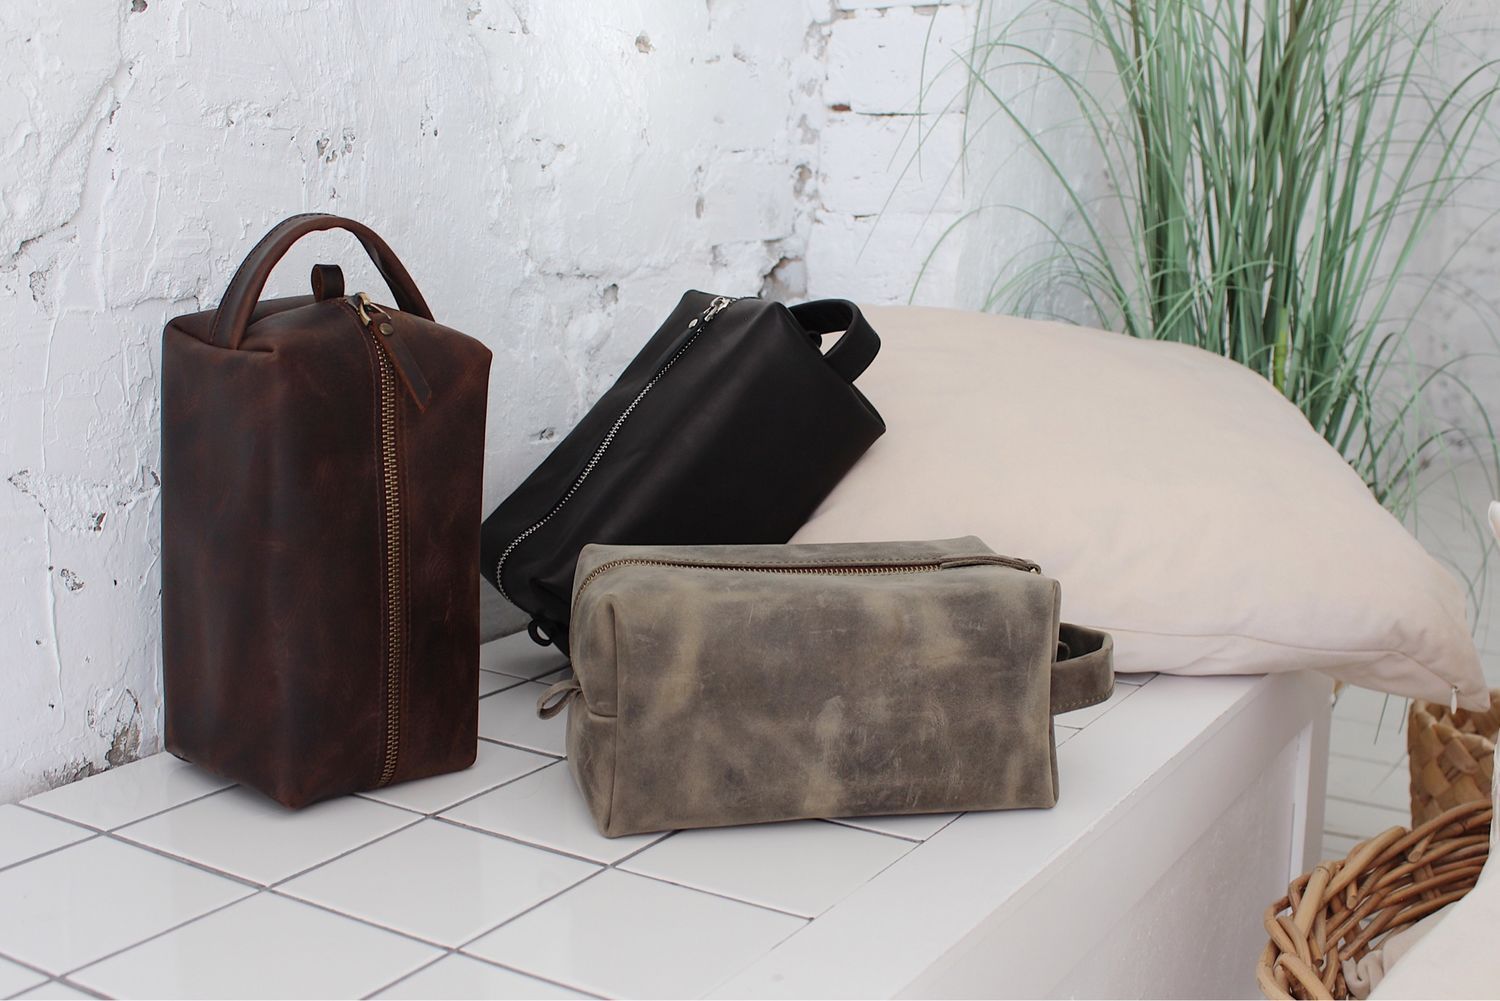 Dressing case, cosmetic bag made of genuine leather SMALL, Travel bags, St. Petersburg,  Фото №1